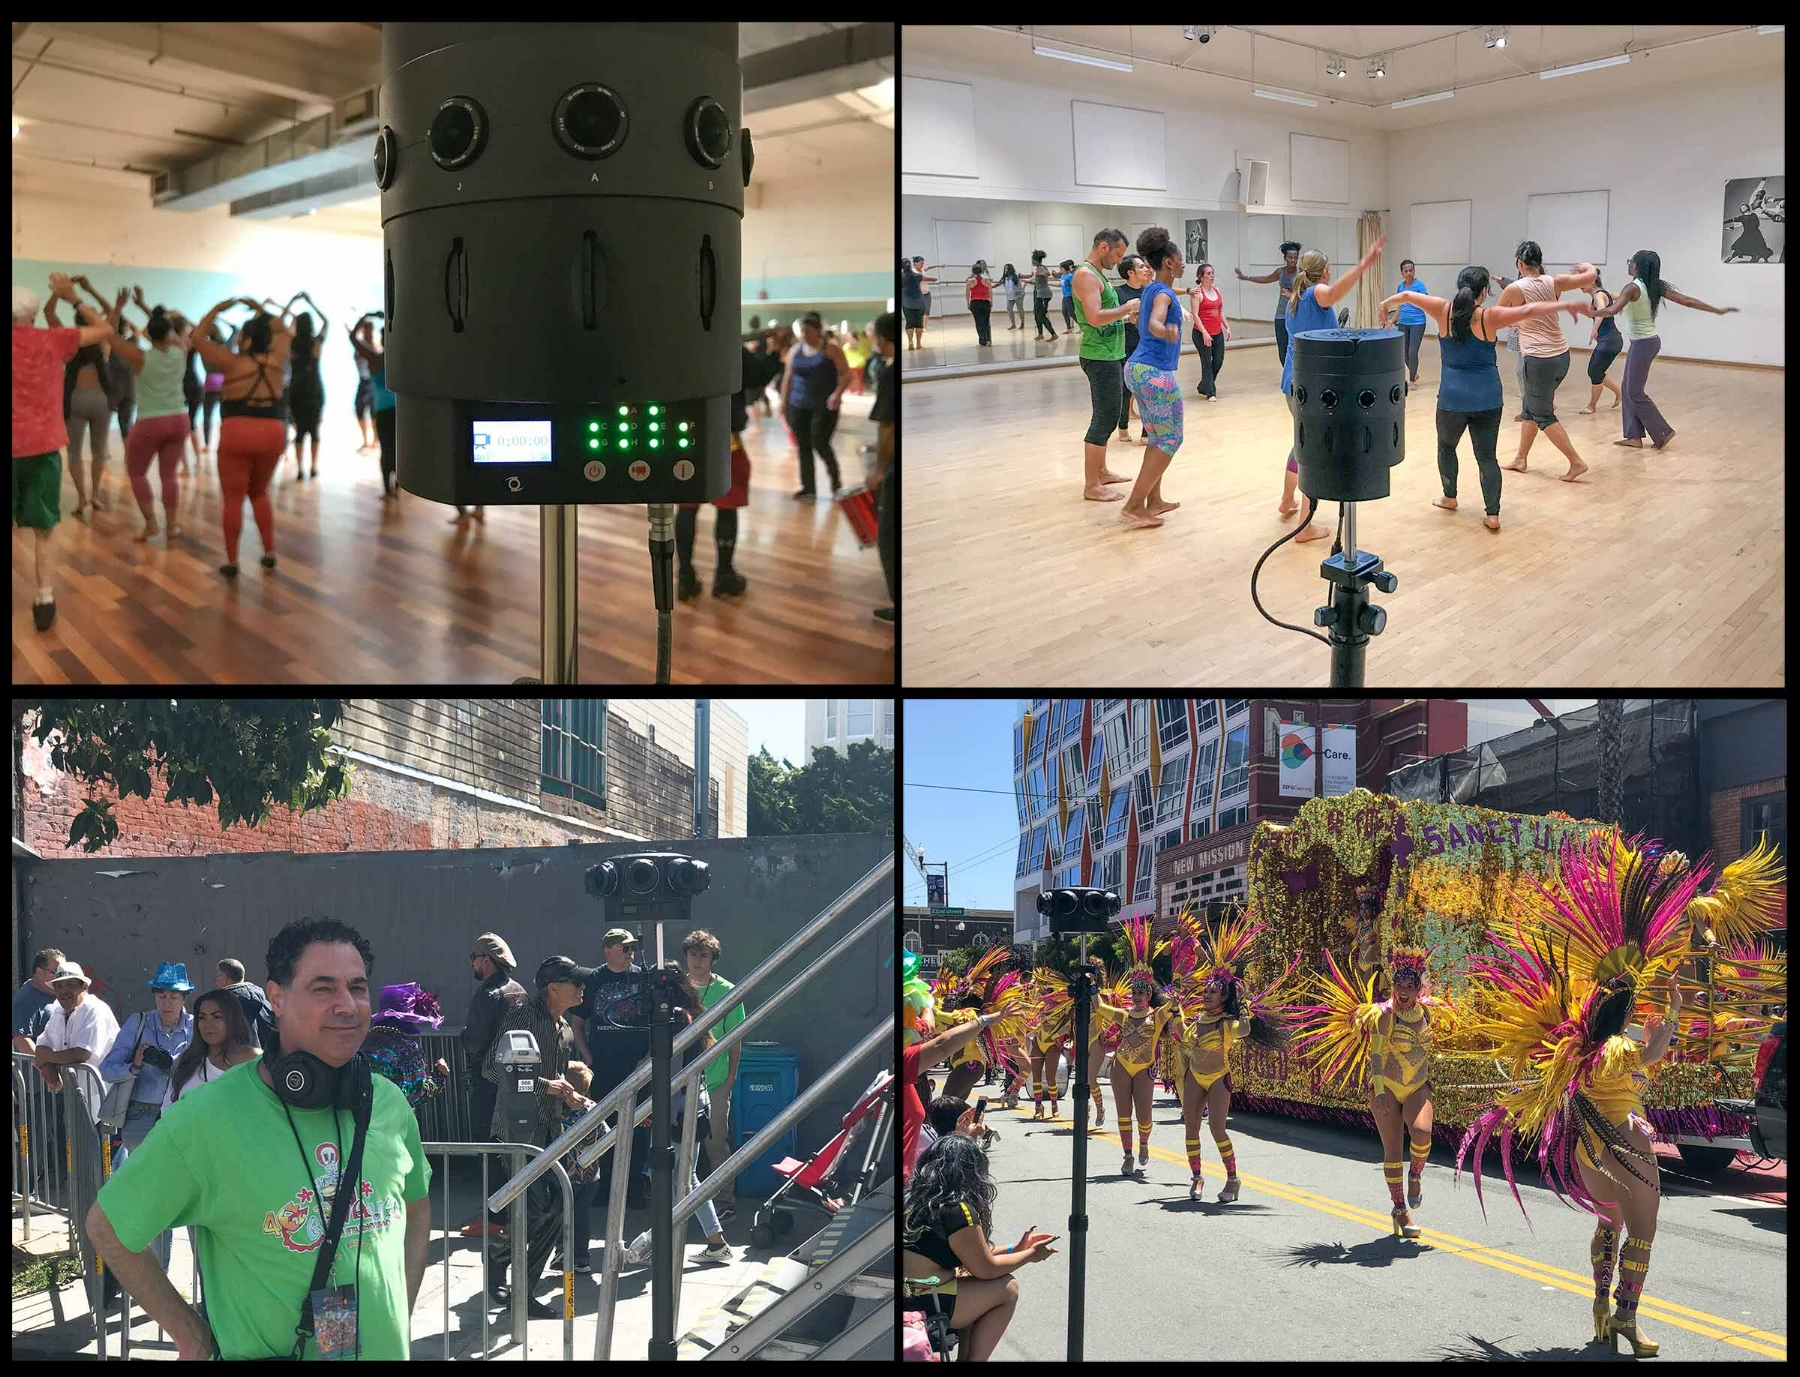 The prototype V1 at the Mission Cultural Center with Fogo na Roupa (upper left) and at Dance Mission Theater (at Tania Santiago's class, upper right). Below left is David Lawrence running location sound at the Grand Parade on Mission Street and the Fogo na Roupa company in the lenses of the V1 Pro. Go Fogo!